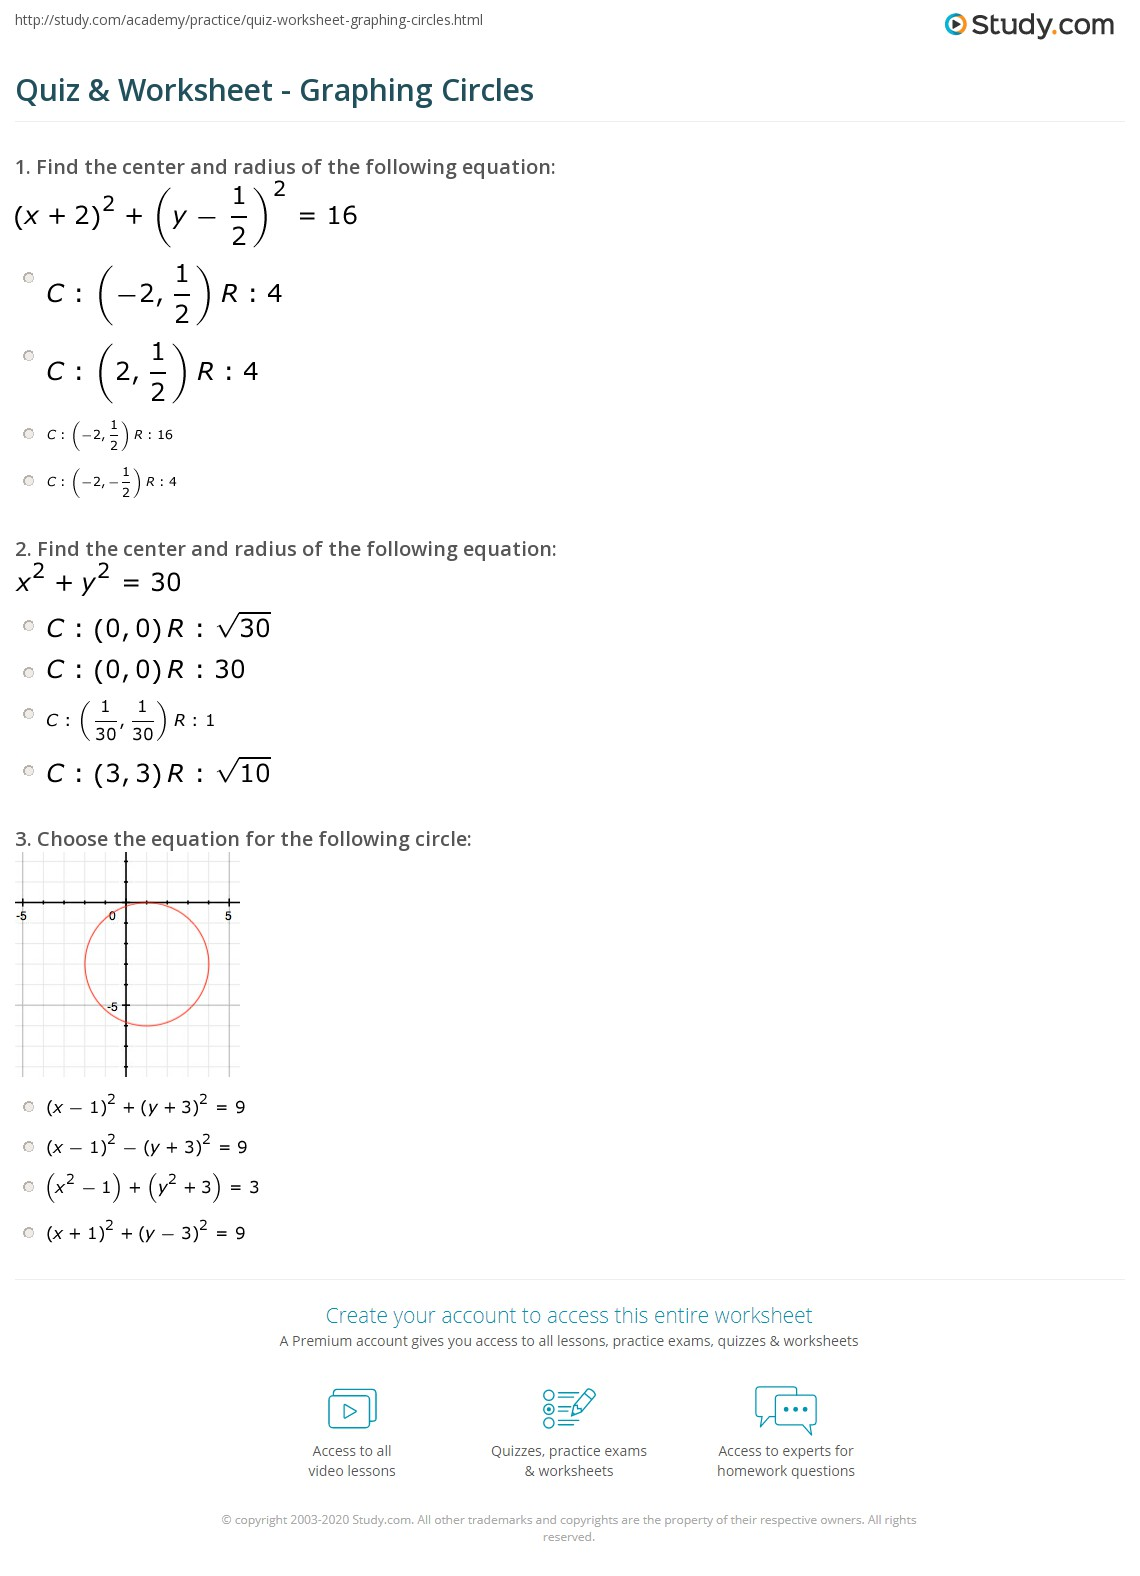 Uncategorized Graphing Circles Worksheet quiz worksheet graphing circles study com print identifying the formula center and radius worksheet